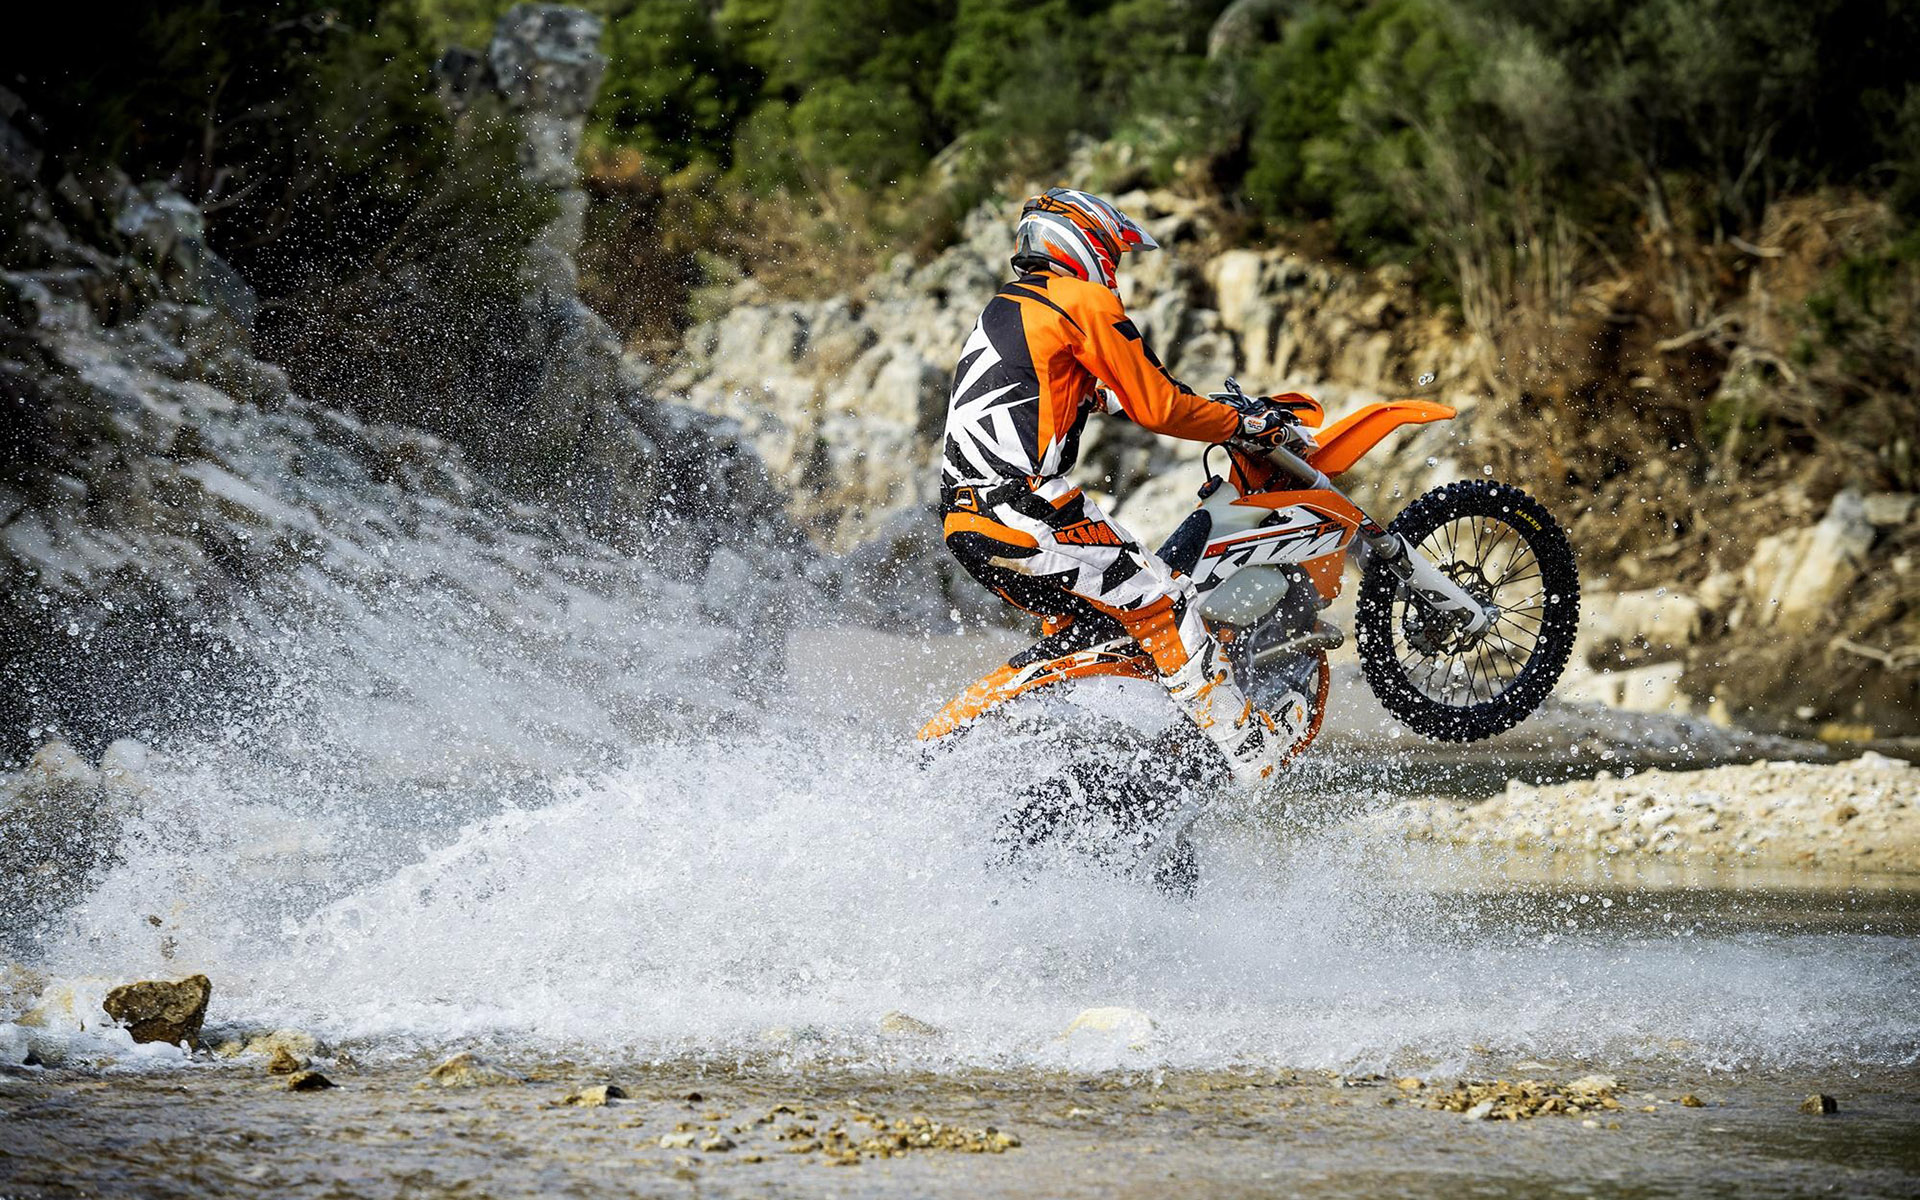 Download KTM Wallpaper 2260 1920x1200 px High Resolution 1920x1200